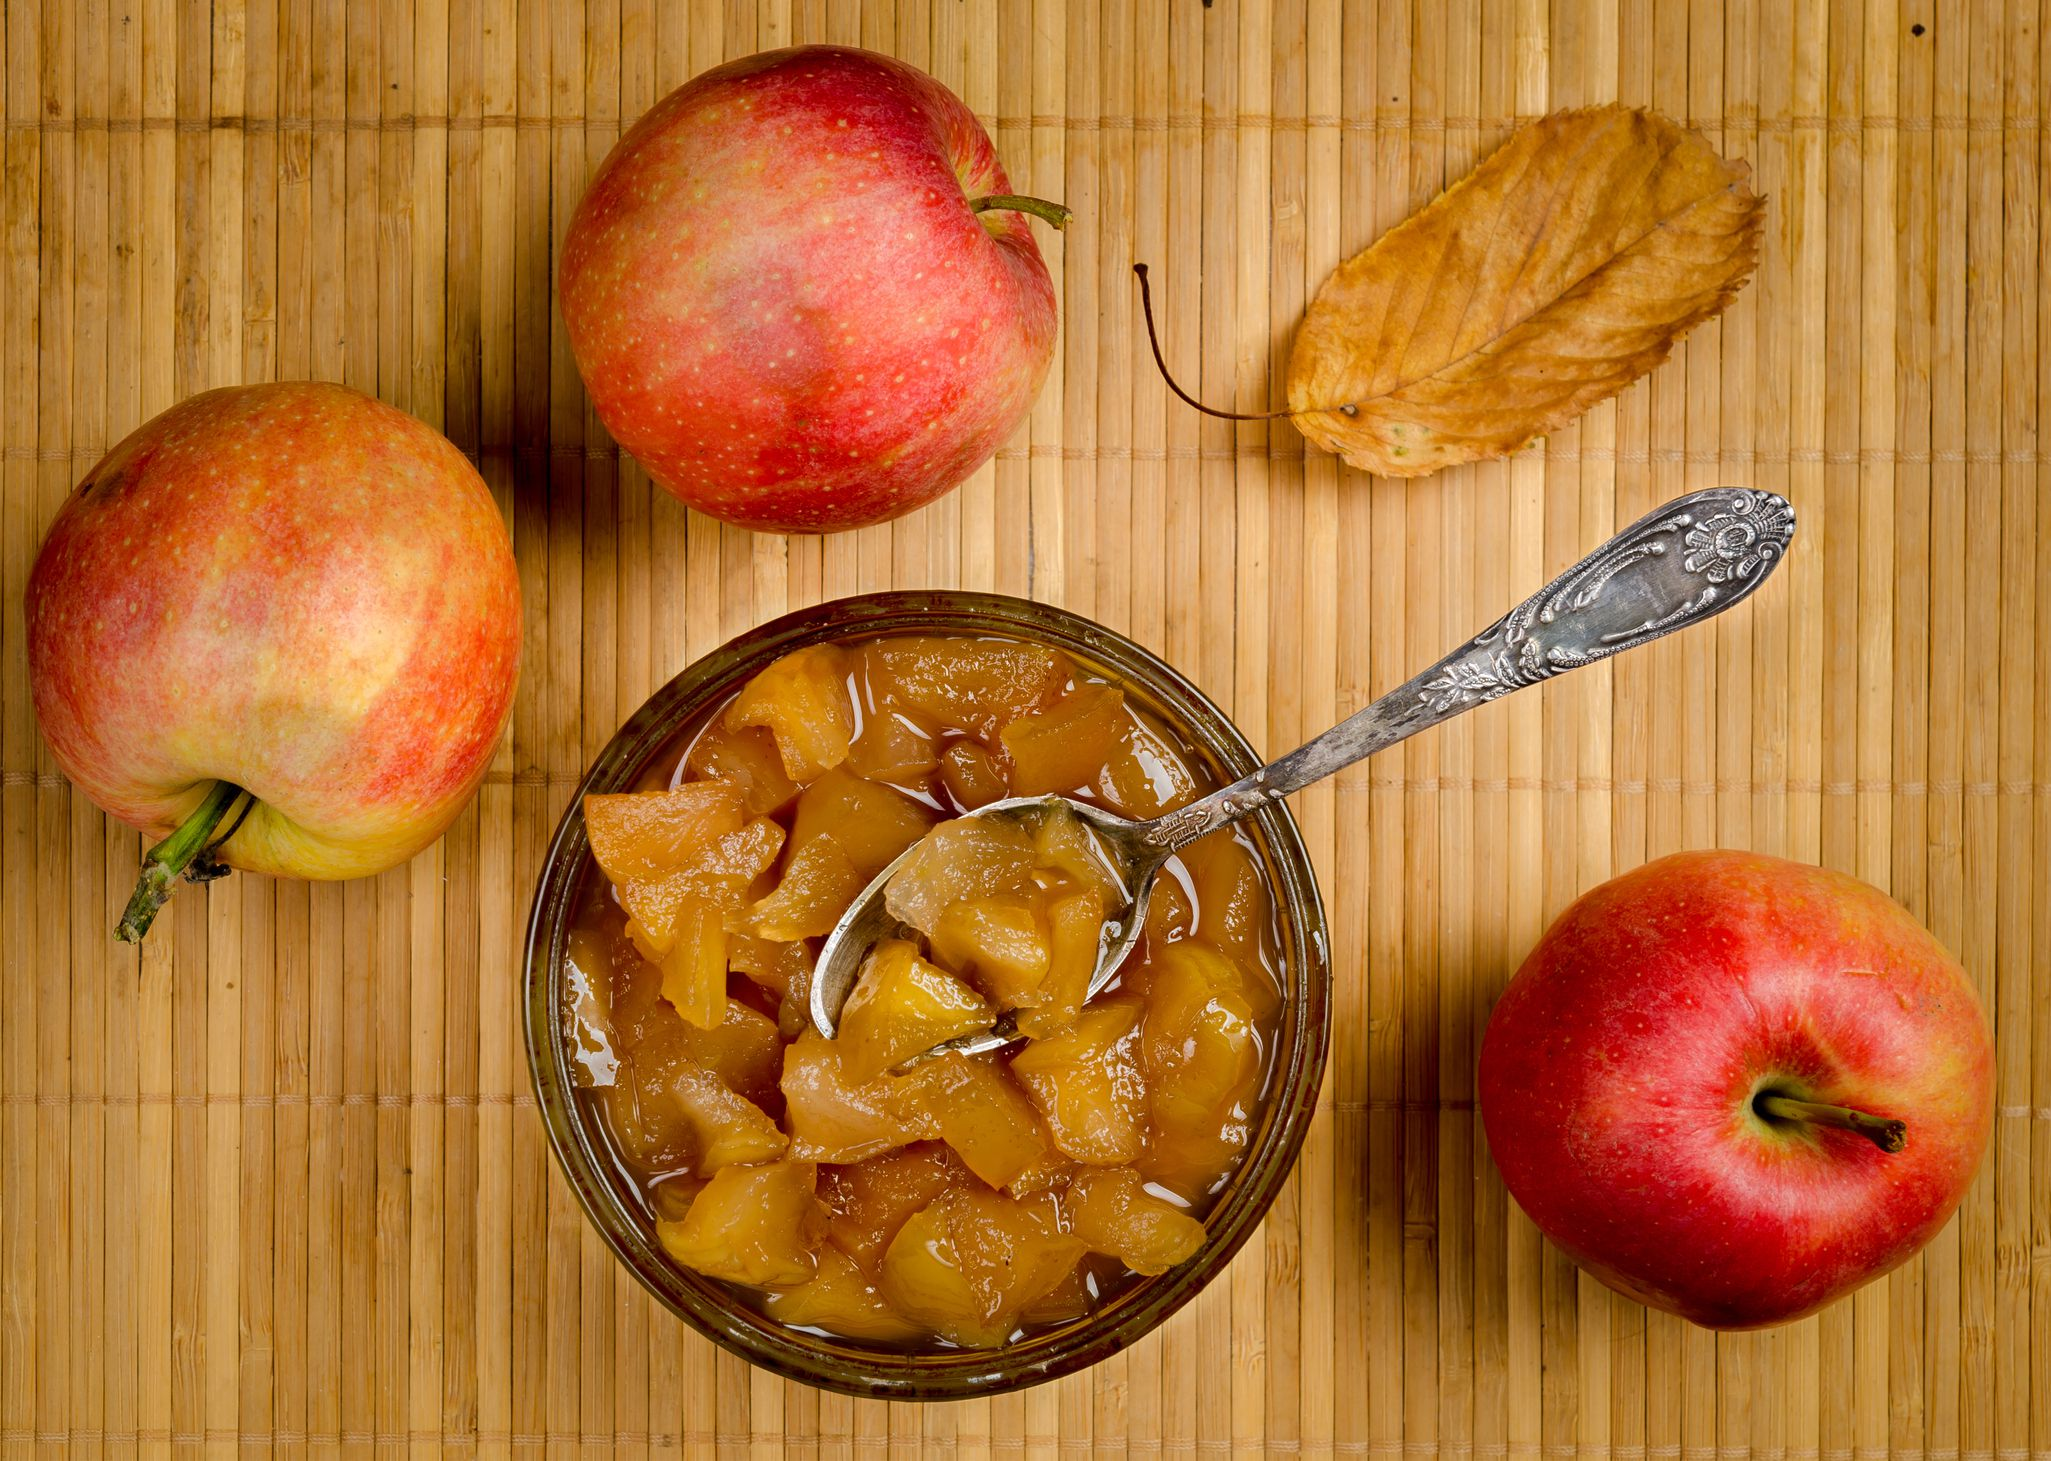 apple pectin: benefits, side effects, dosage, and interactions